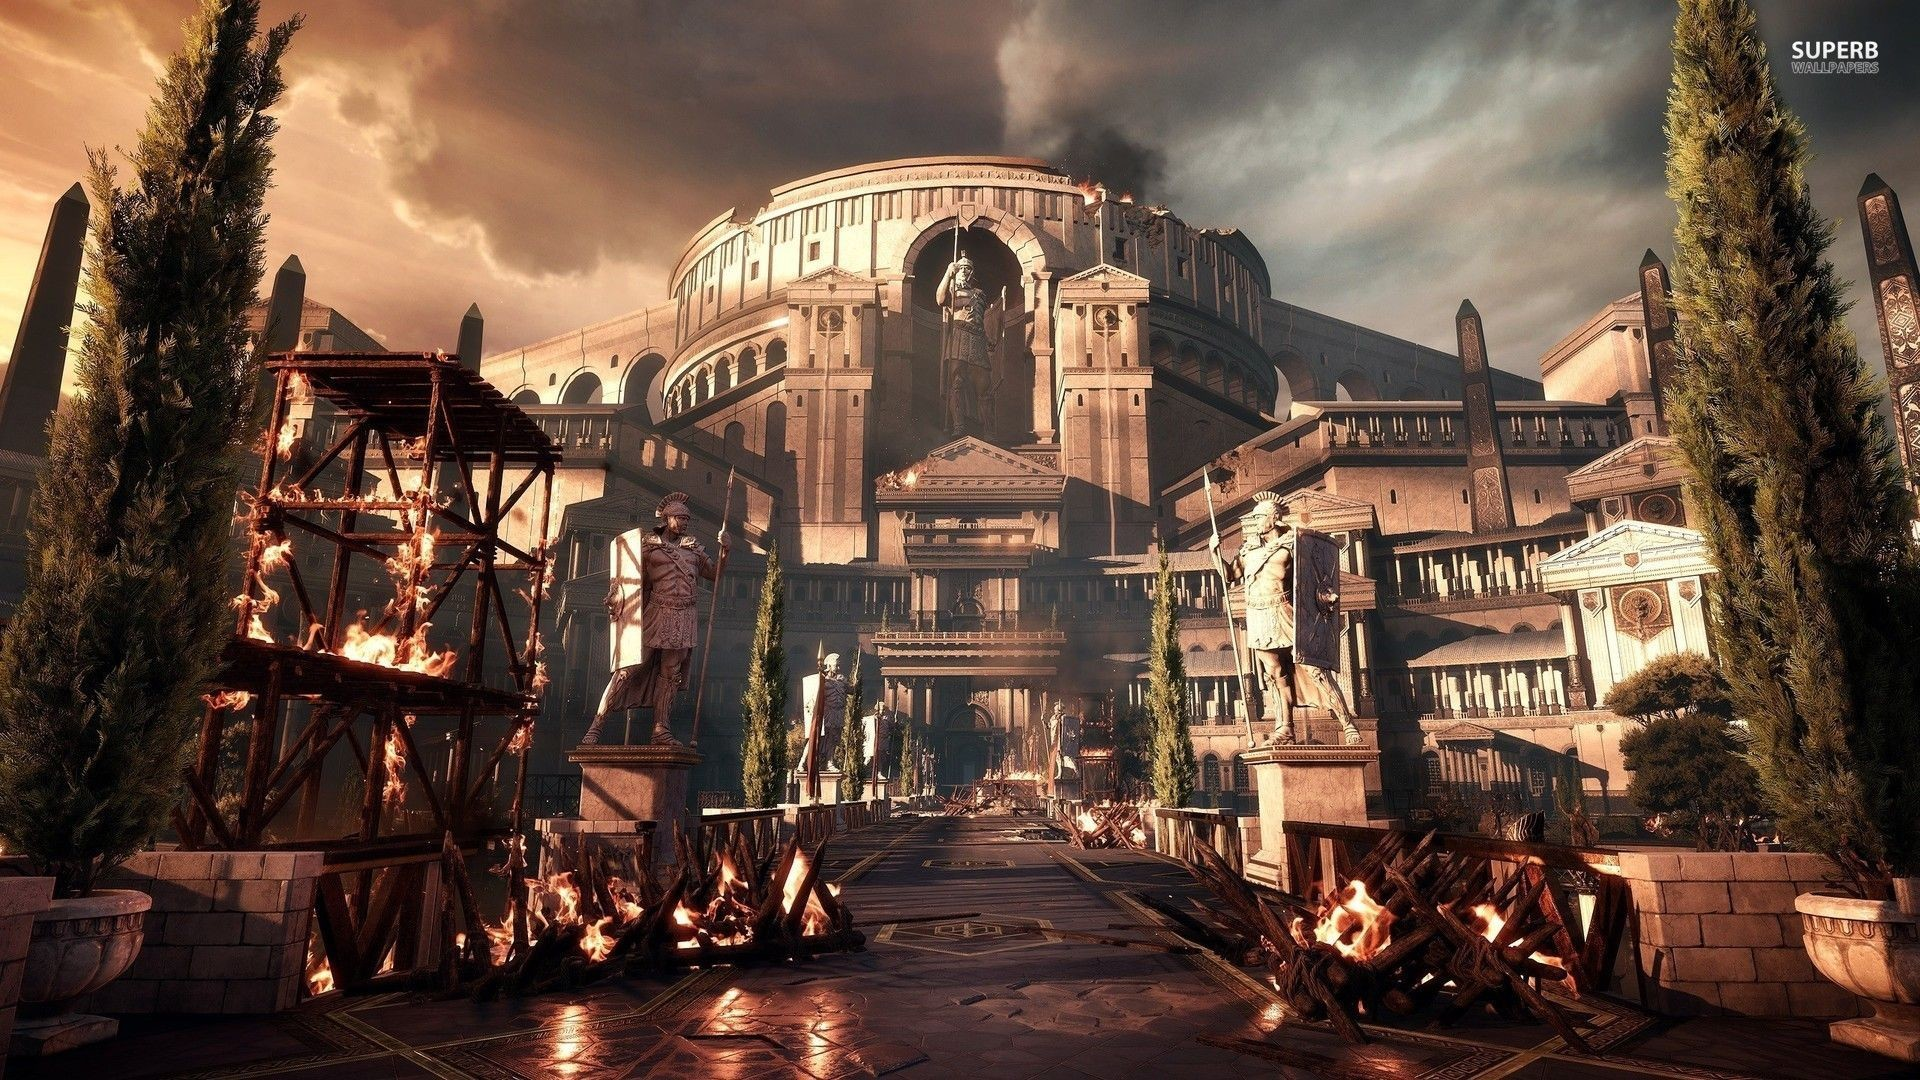 Ancient Rome Artwork and Wallpapers Album on Imgur   HD Wallpapers    Pinterest   Wallpaper, Roman and Holy roman empire